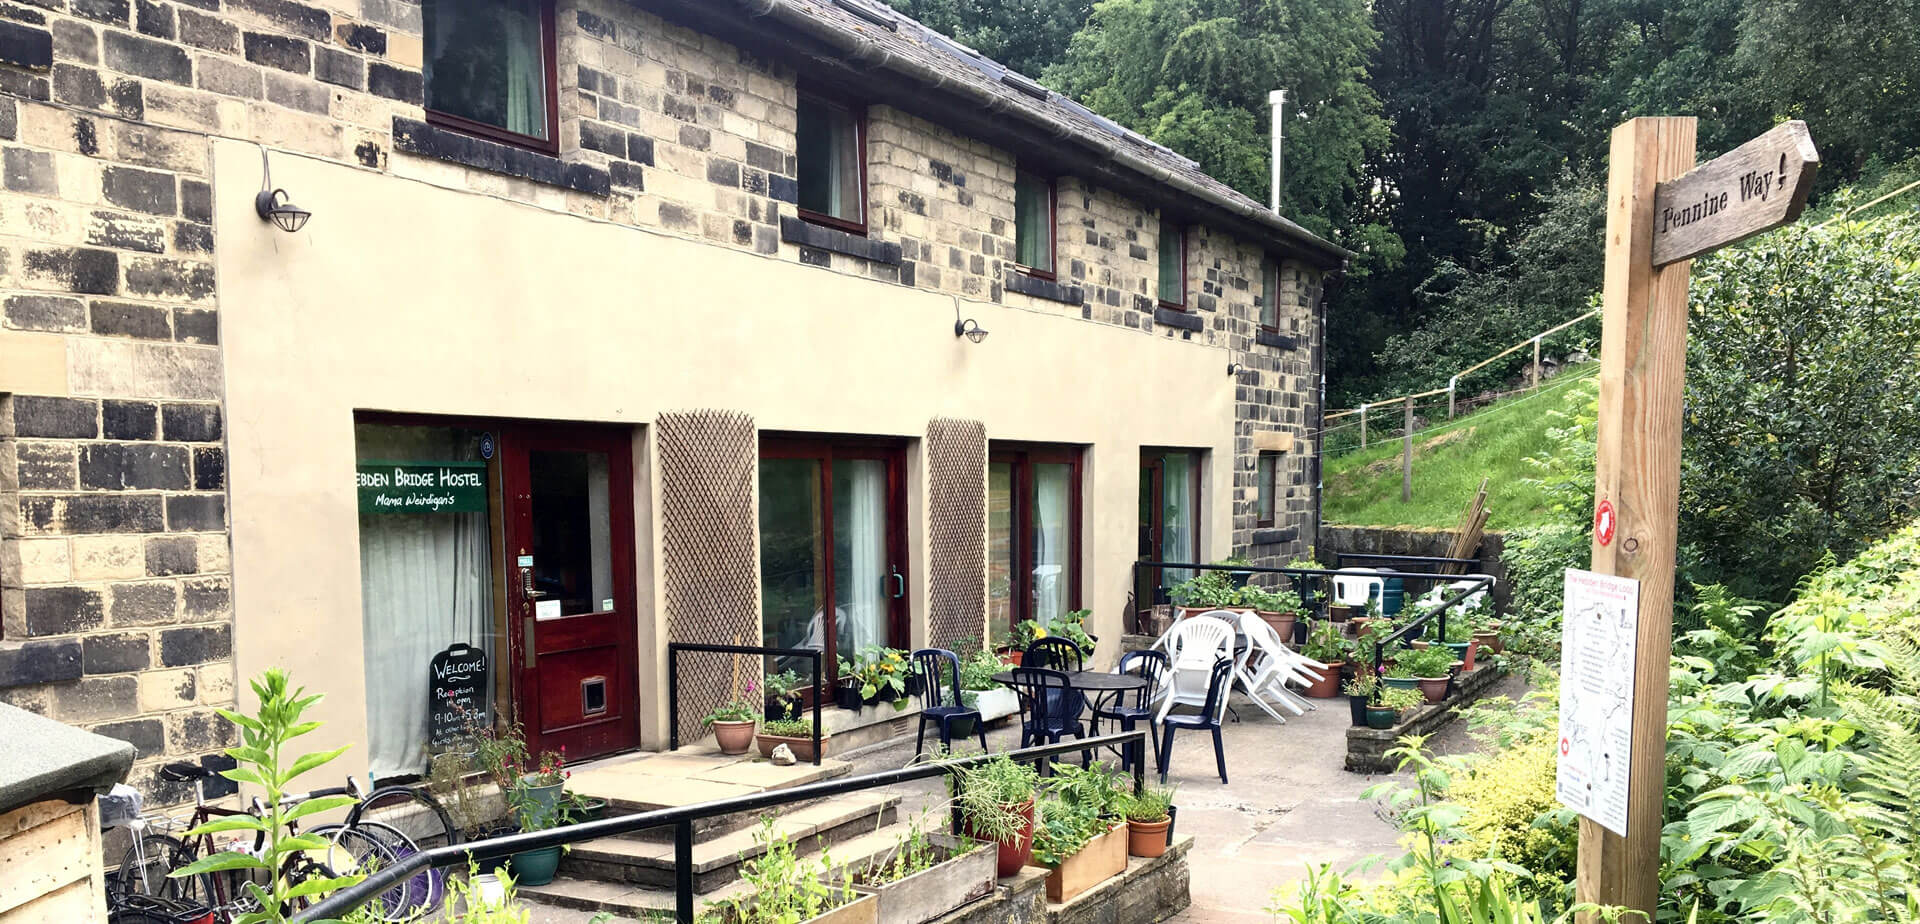 hebden bridge hostel accommodation on the pennine way